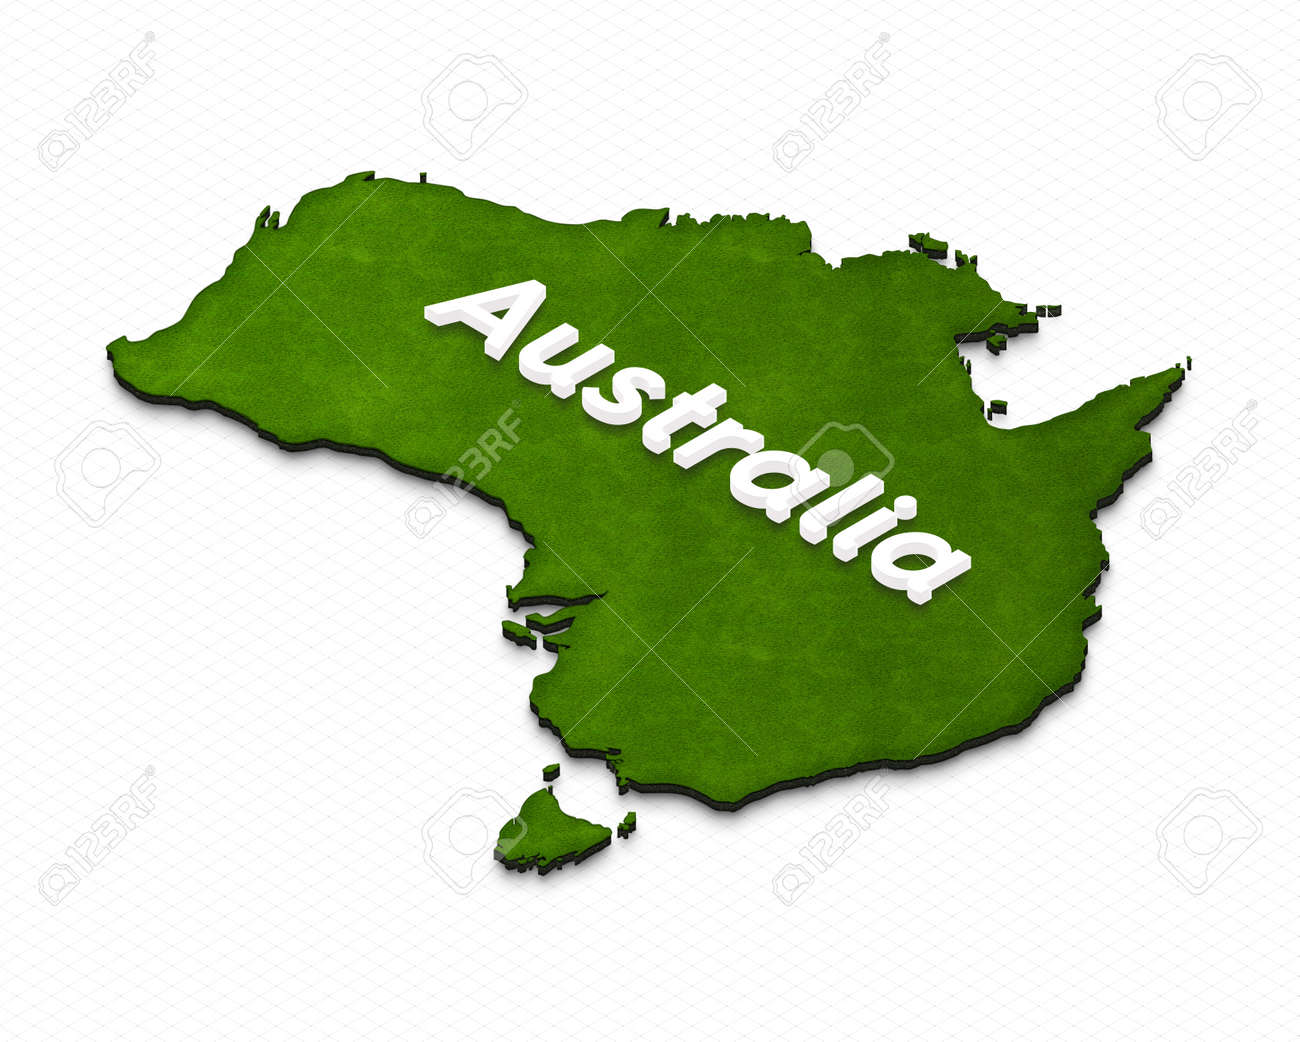 Illustration of a green ground map of australia on grid background illustration illustration of a green ground map of australia on grid background left 3d isometric projection with the name of continent gumiabroncs Gallery